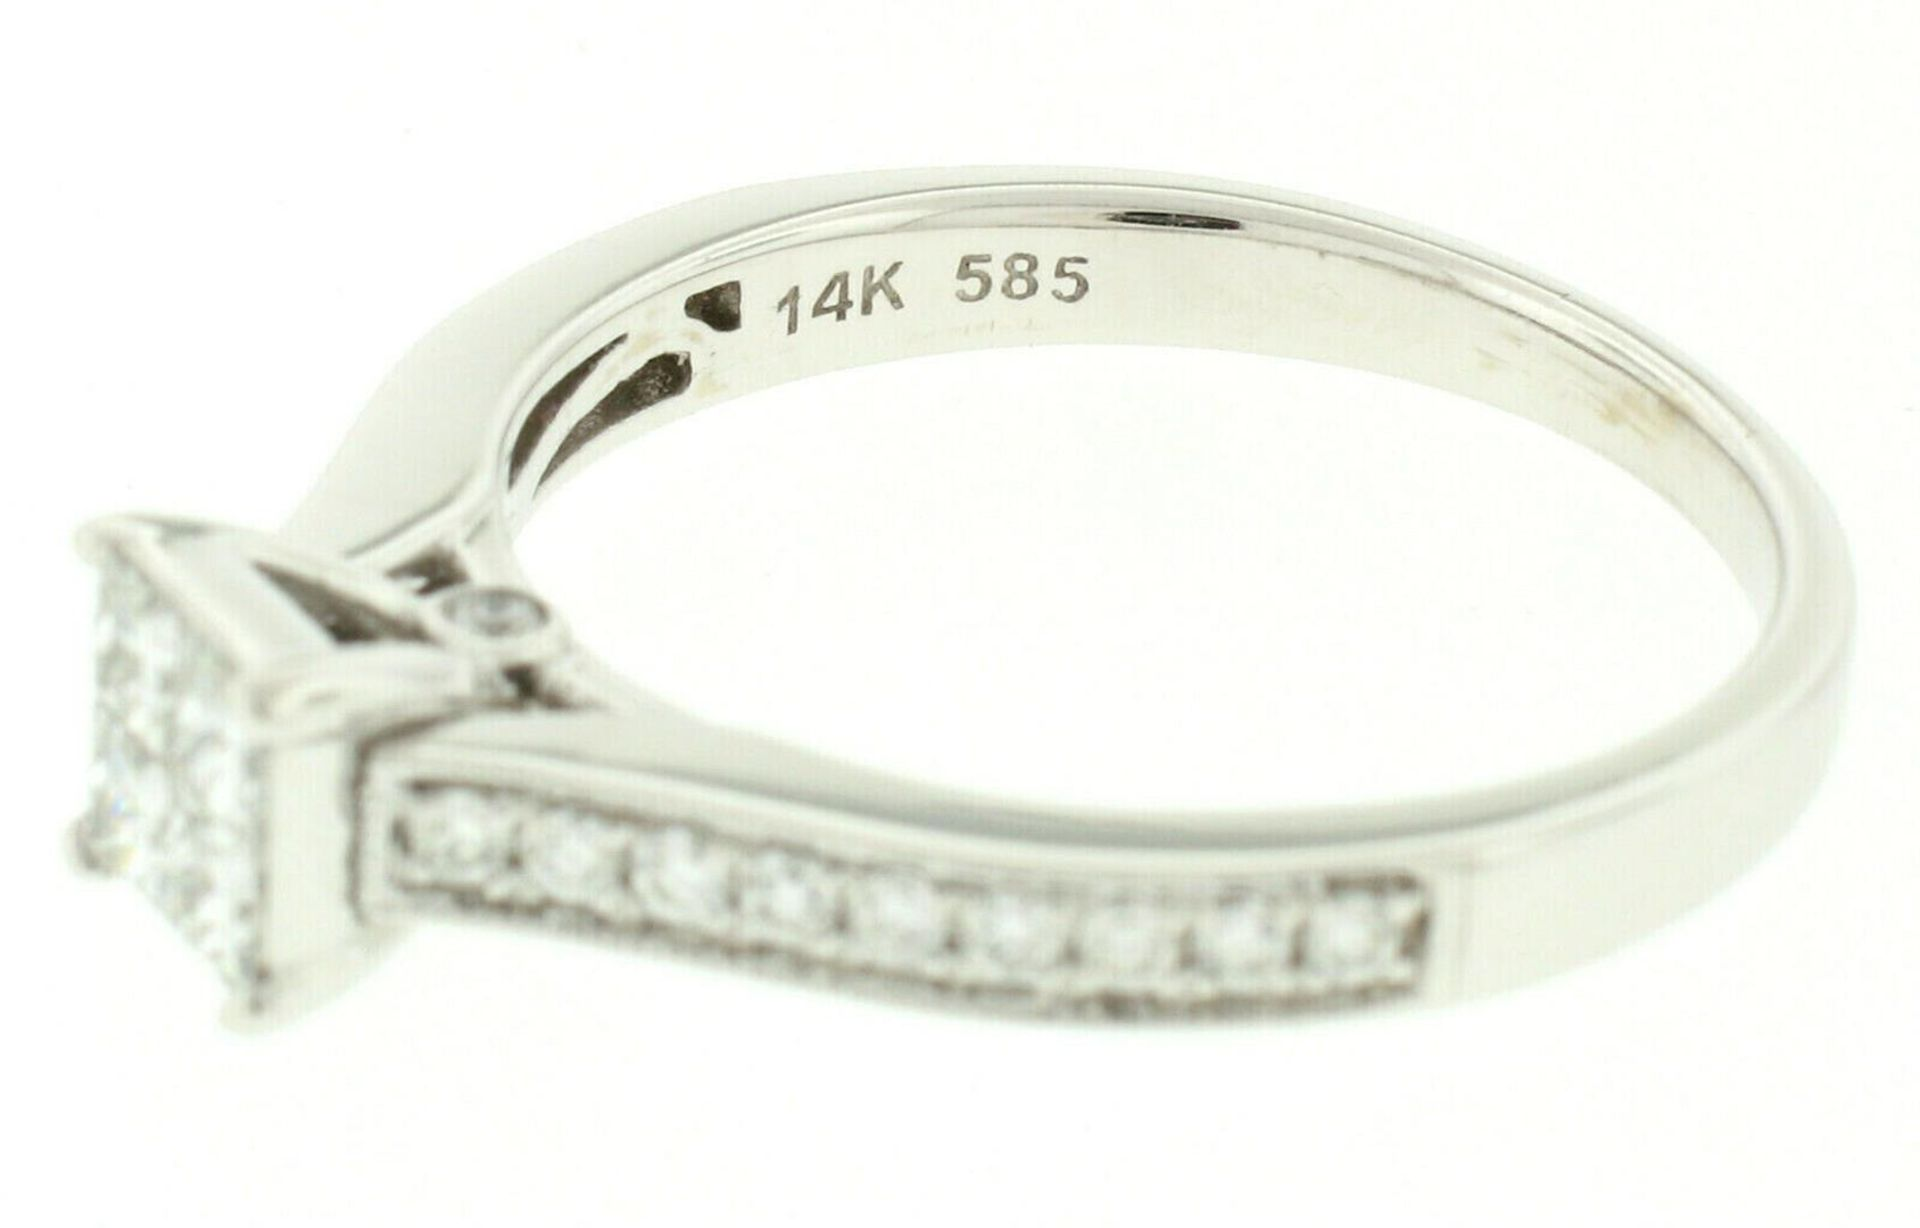 14k White Gold 0.79ctw Illusion Solitaire Princess Cut Diamond Engagement Ring - Image 8 of 8